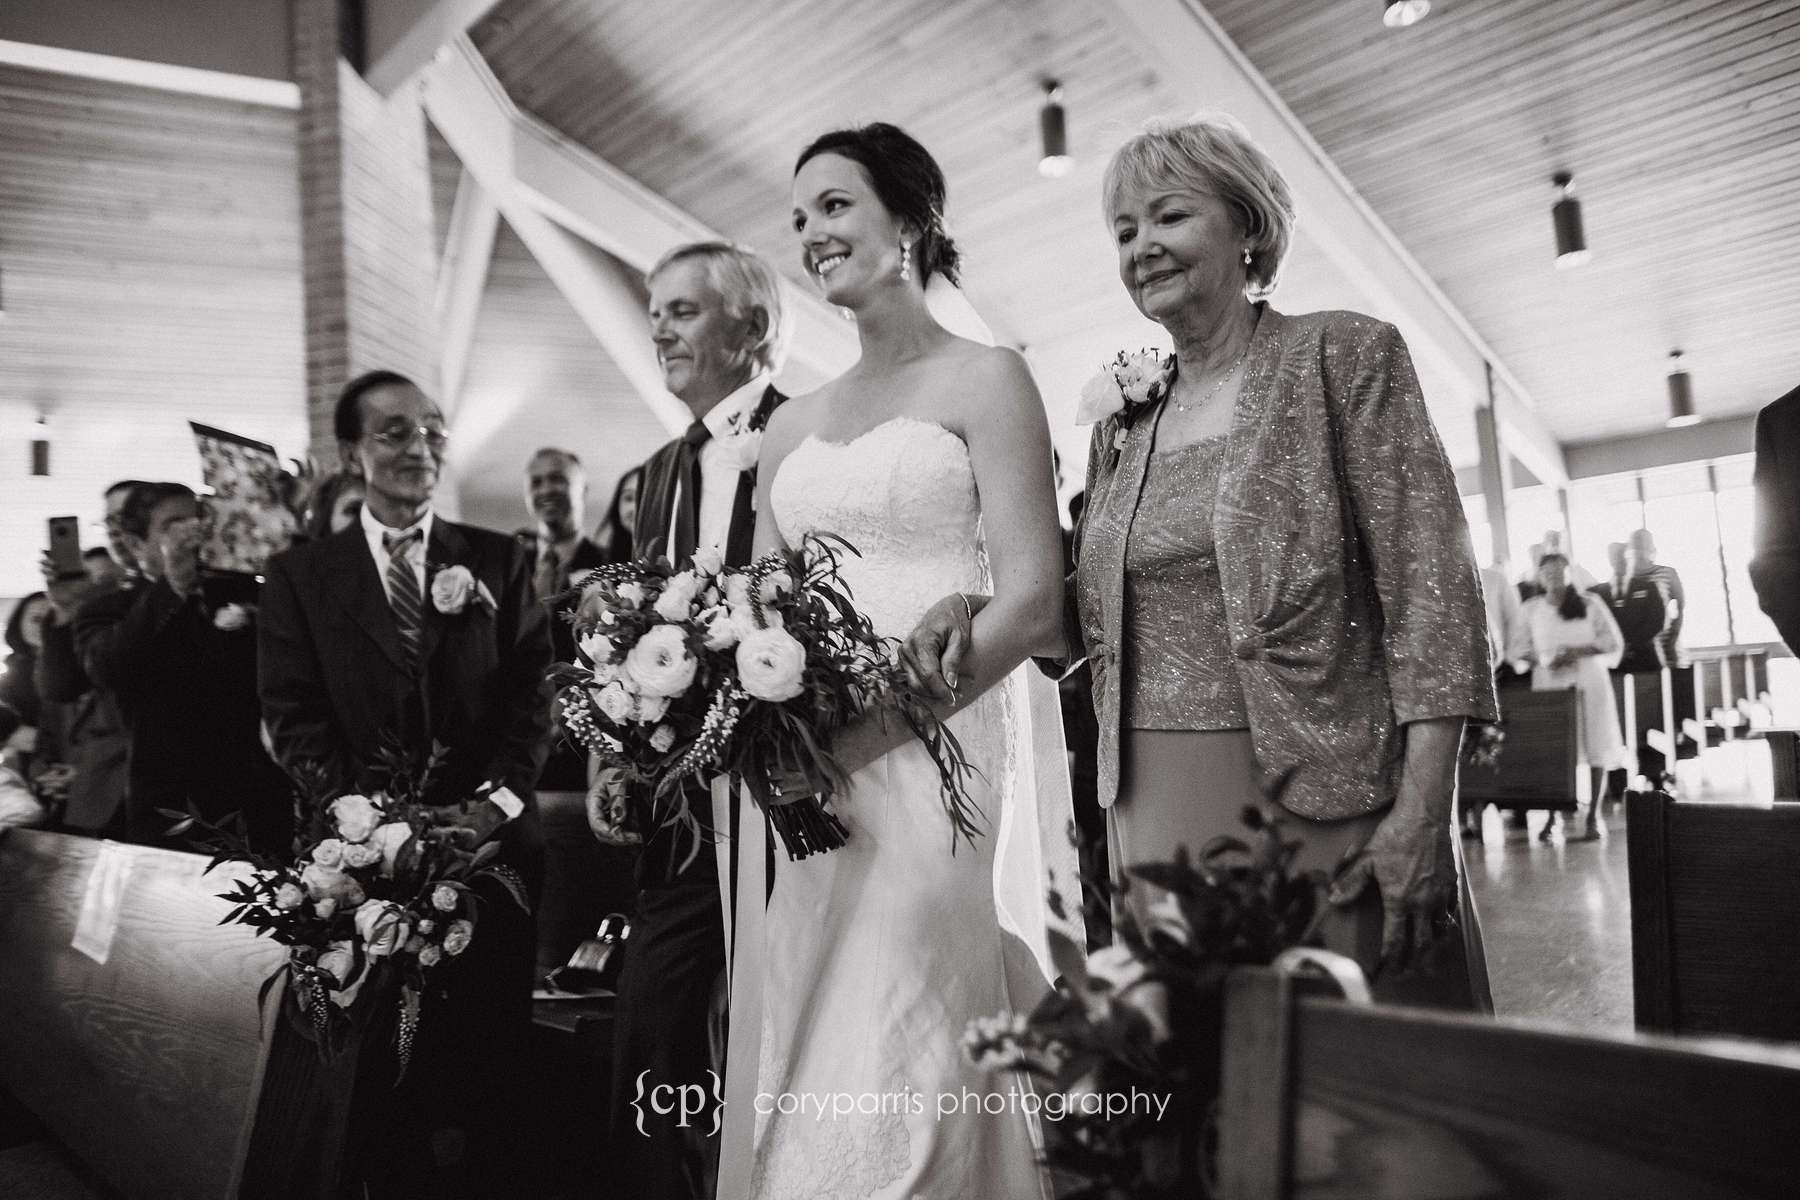 Angie walking down the aisle with her parents before the wedding.